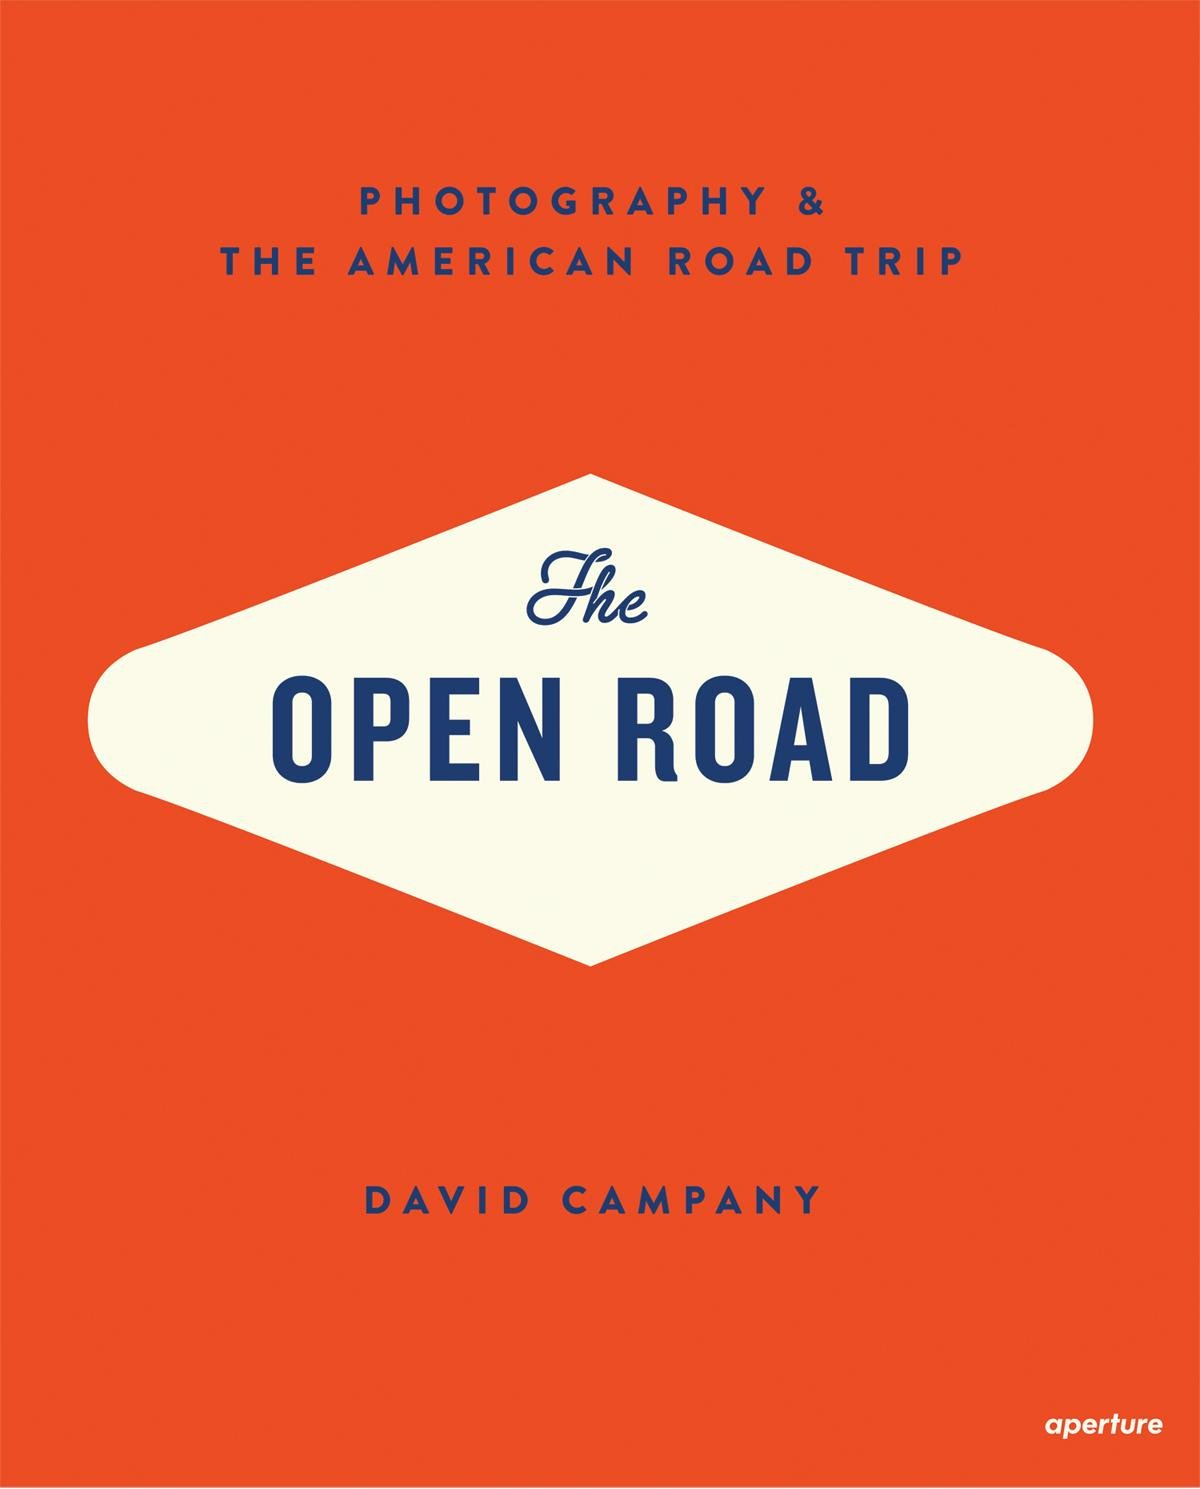 The Open Road: Photography & the American Road Trip: Amazon.co.uk: David  Campany: 9781597112406: Books